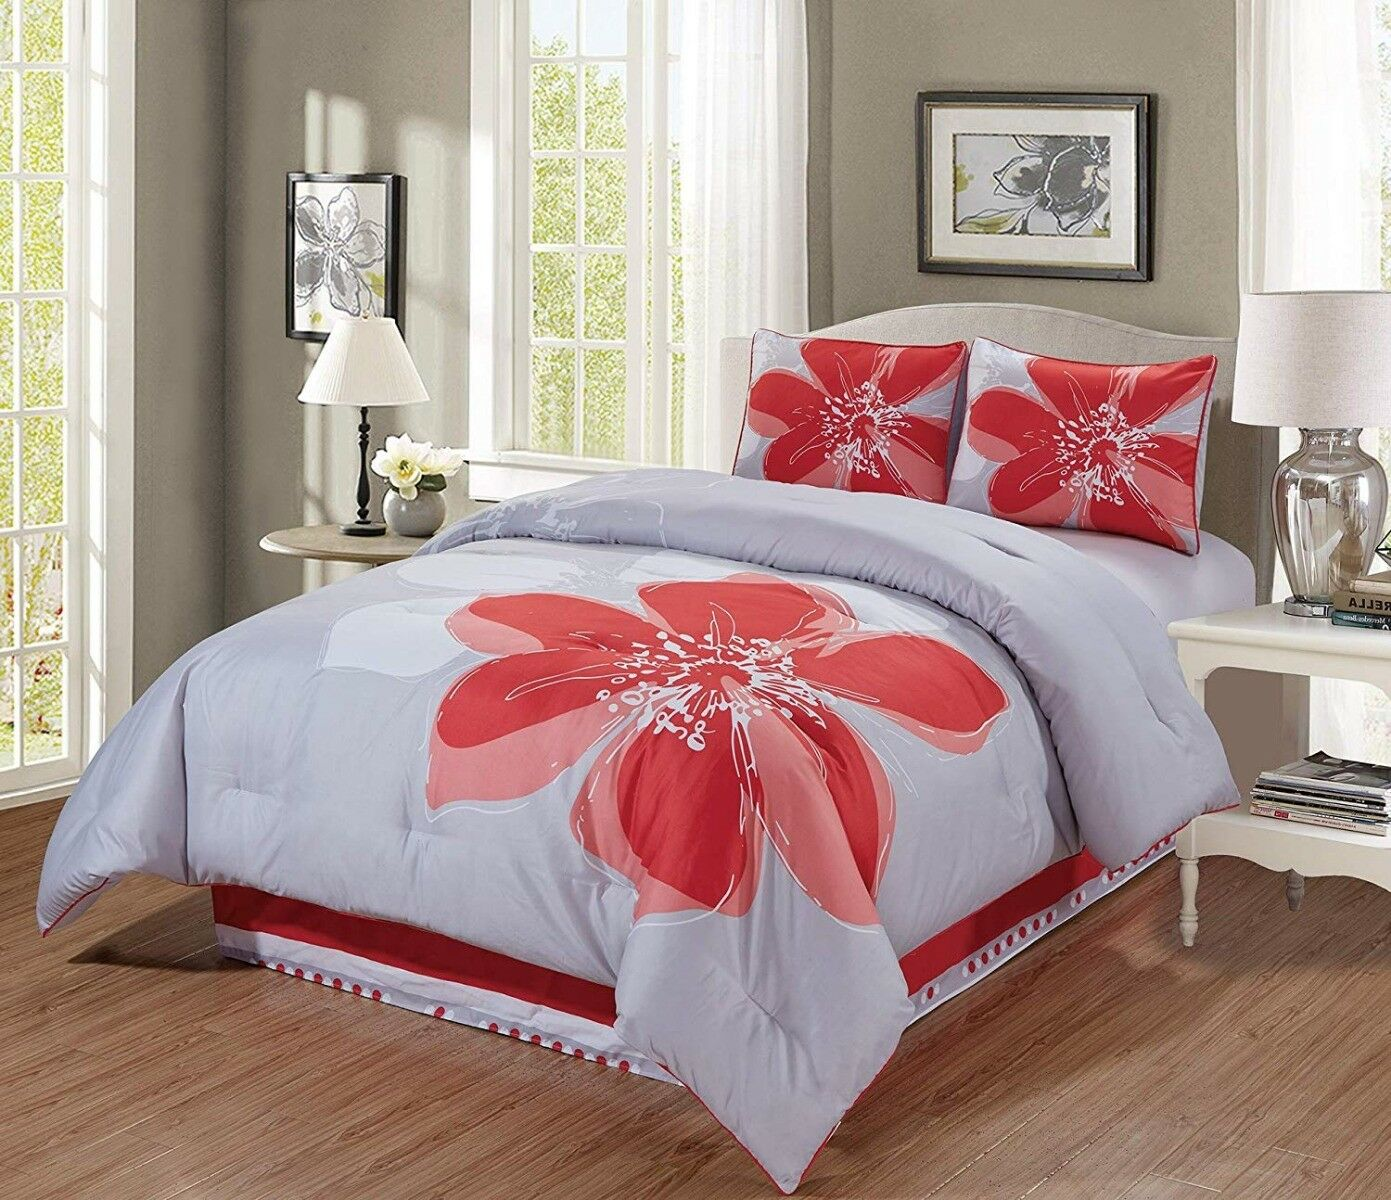 4 Pc Coral Orange grau Weiß Hibiscus Floral QUEEN Größe Comforter Set Bedding